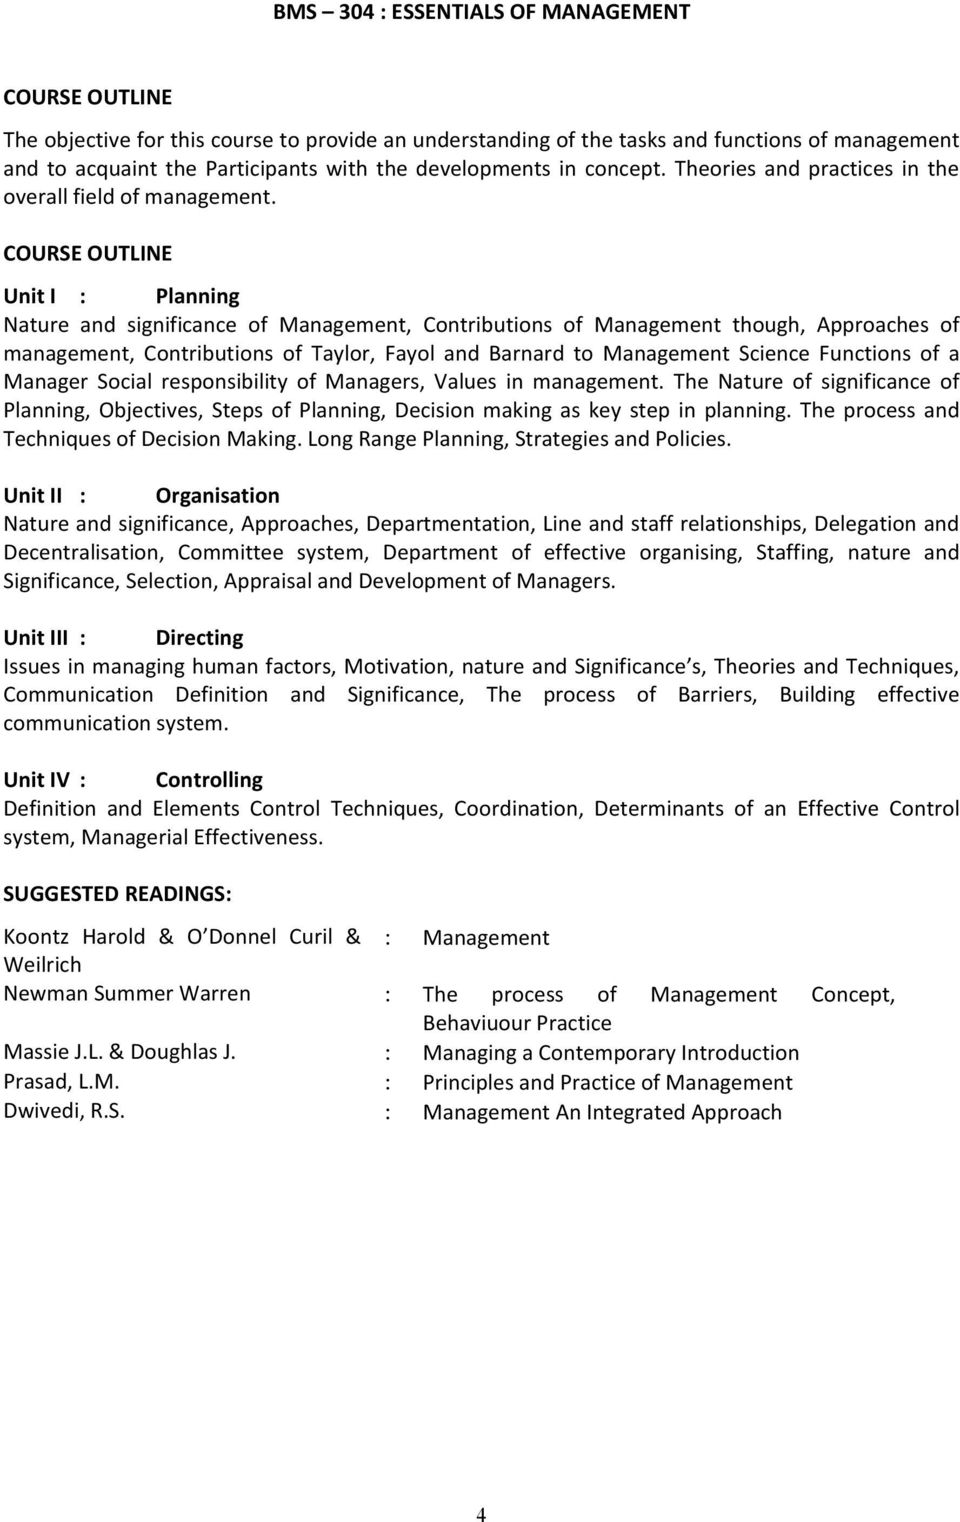 Unit I : Planning Nature and significance of Management, Contributions of Management though, Approaches of management, Contributions of Taylor, Fayol and Barnard to Management Science Functions of a